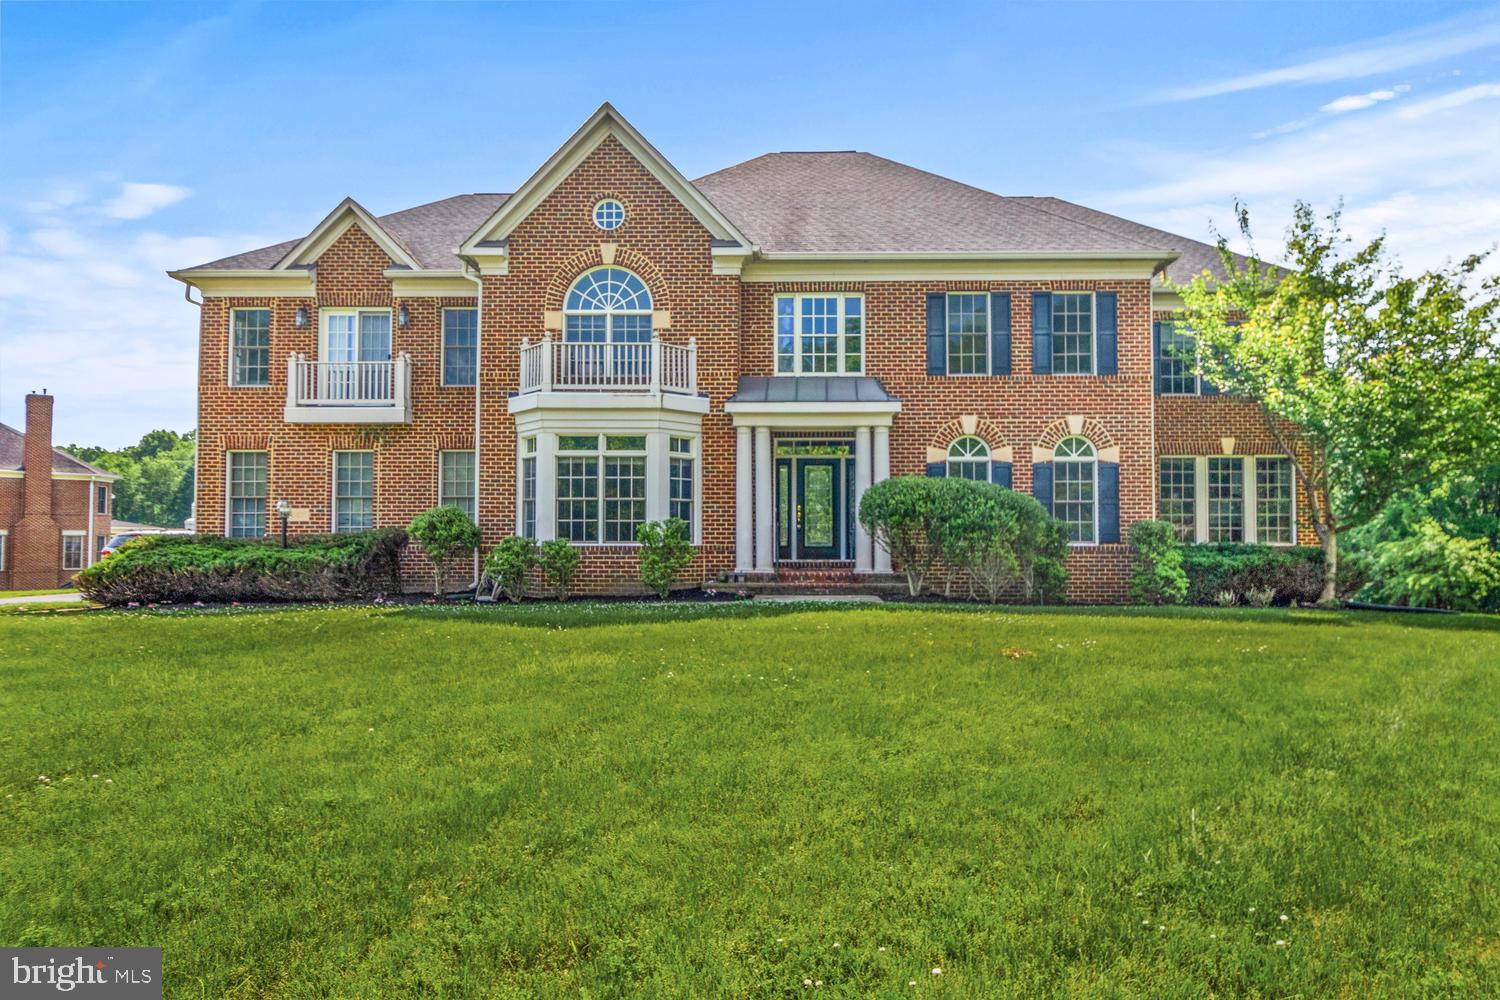 16616 NORBECK FARM DRIVE, OLNEY, MD 20832